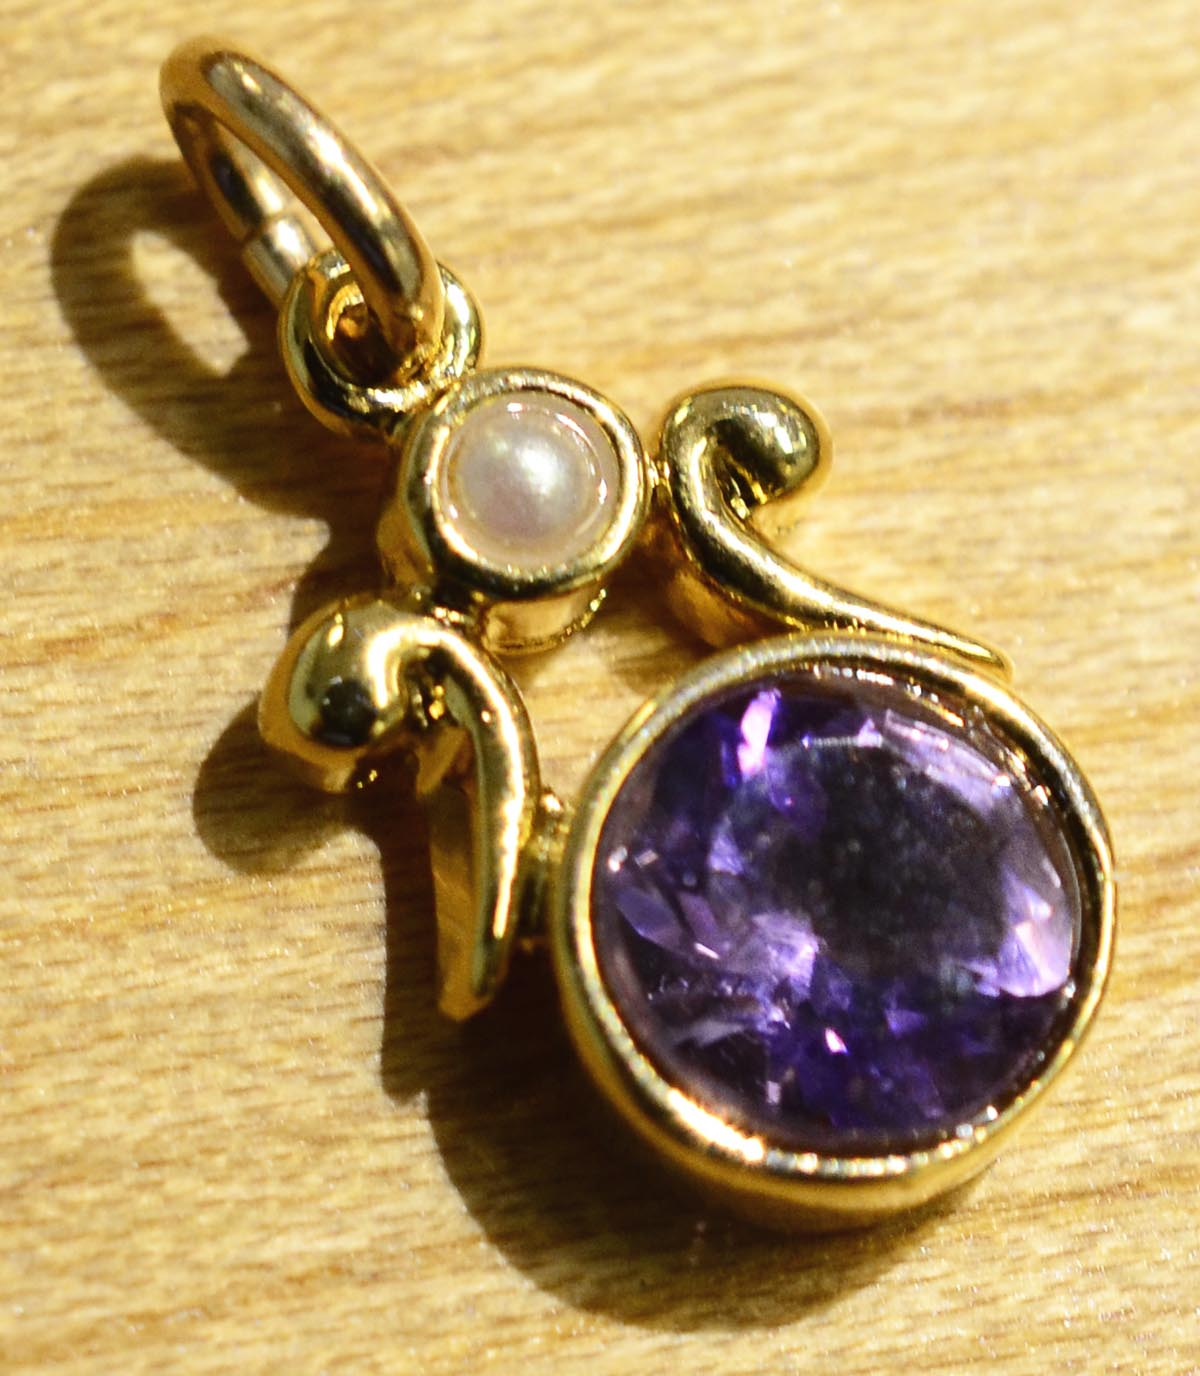 Handmade amethyst pearl and gold vermeil pendant